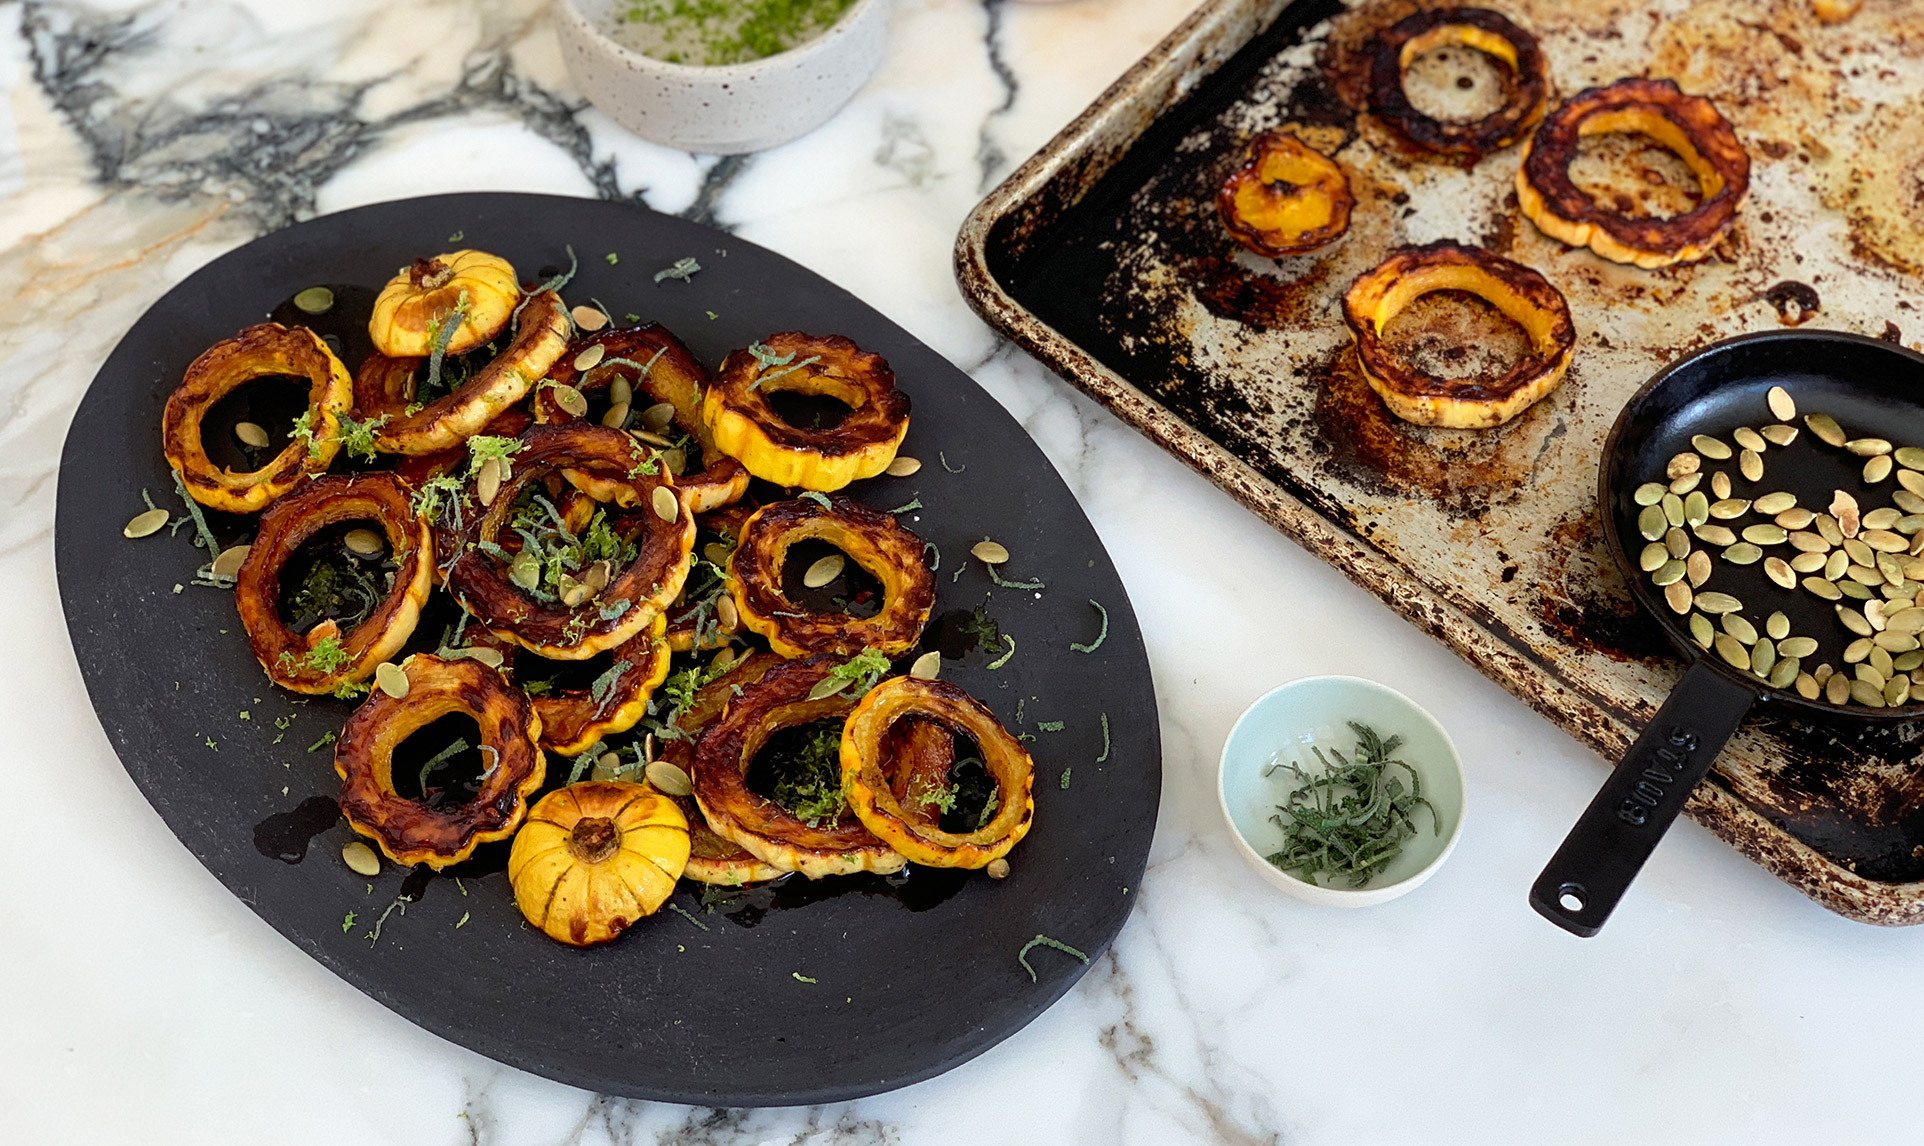 Delicata squash recipe from Athena Calderone